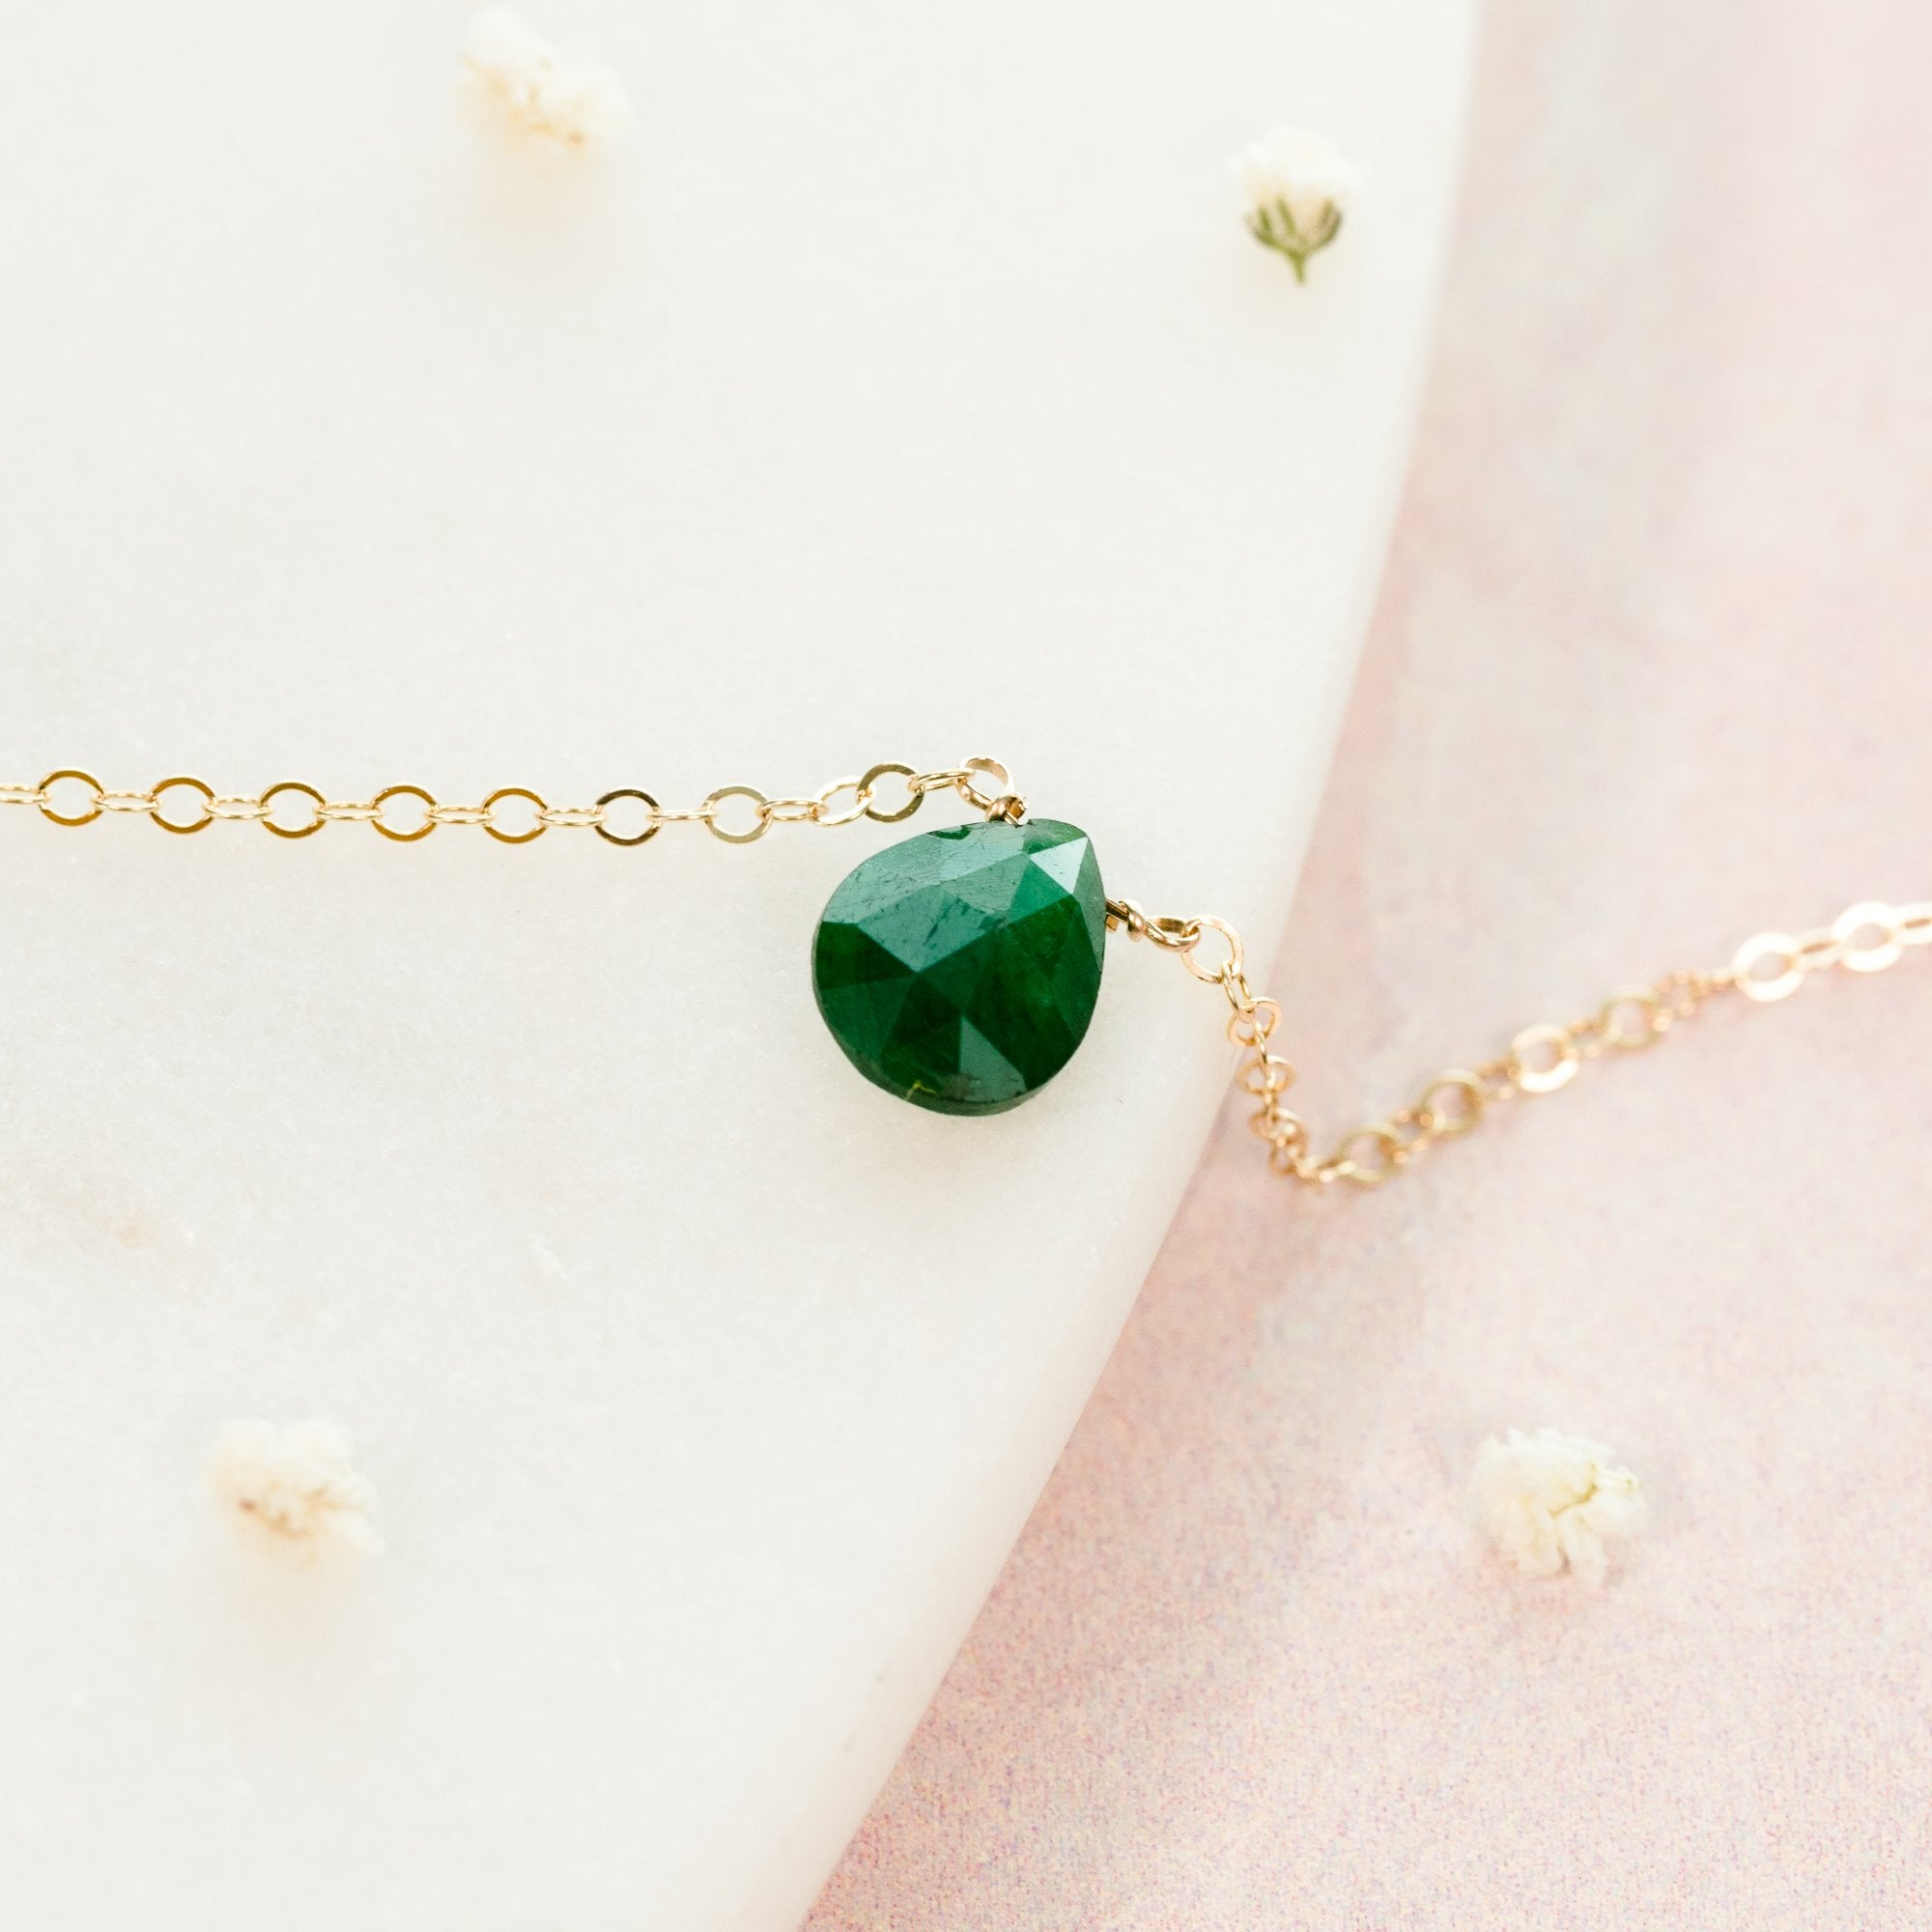 May Emerald Birthstone Necklace Liz.Beth Jewelry Co.